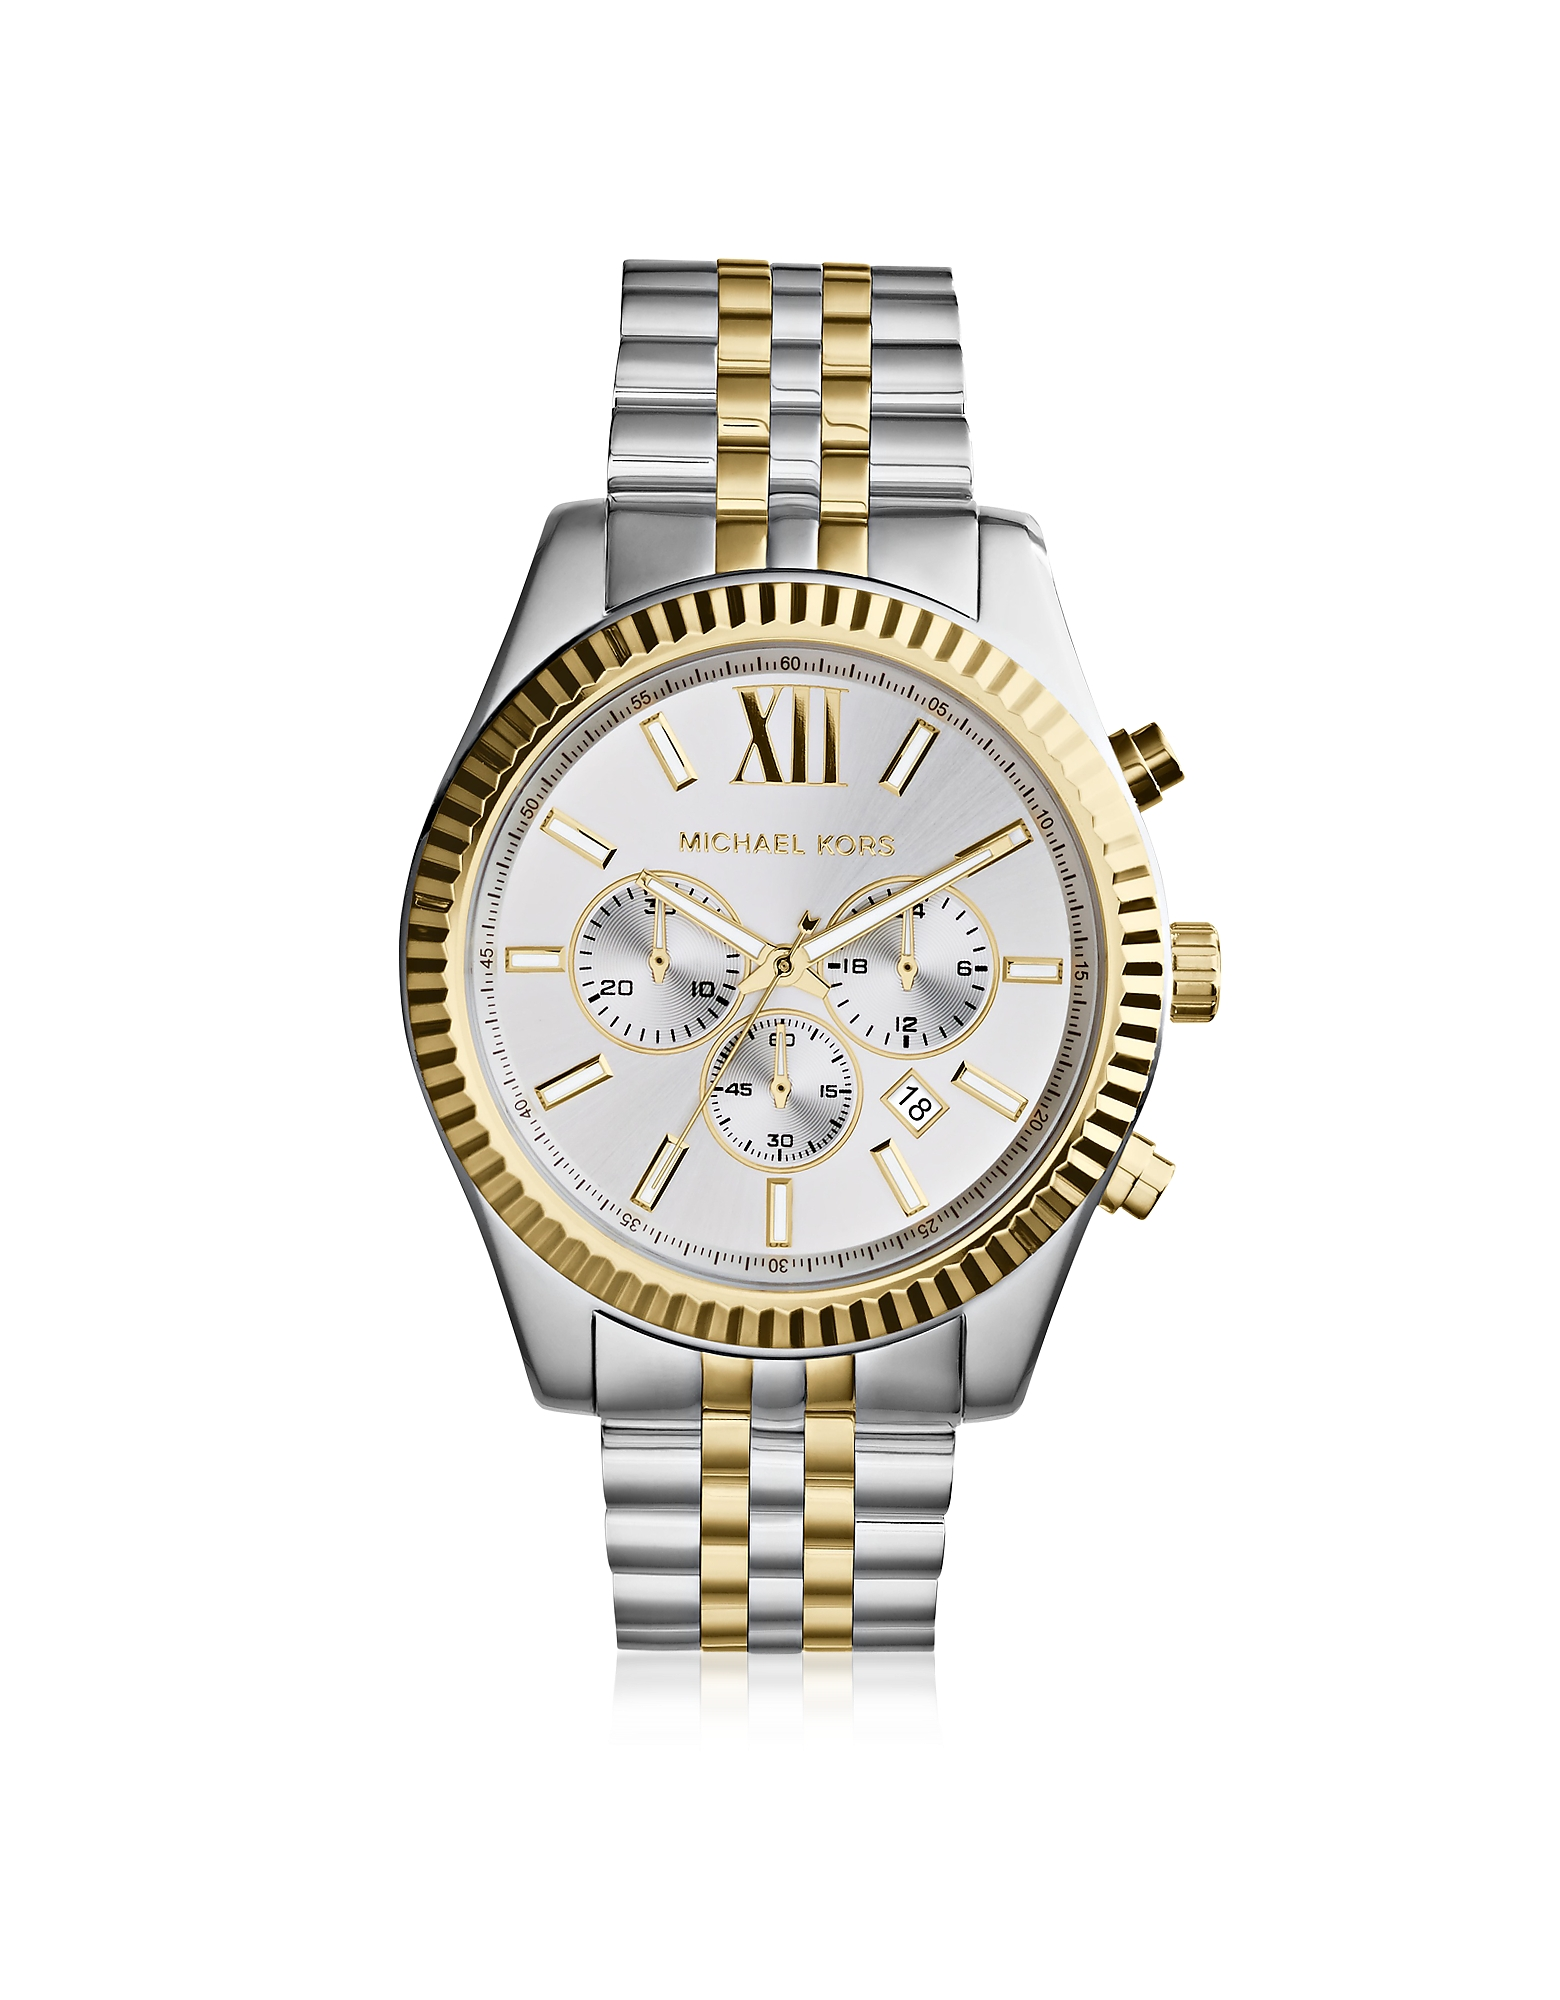 Michael Kors Men's Watches, Lexington Two Tone Stainless Steel Men's Chrono Watch